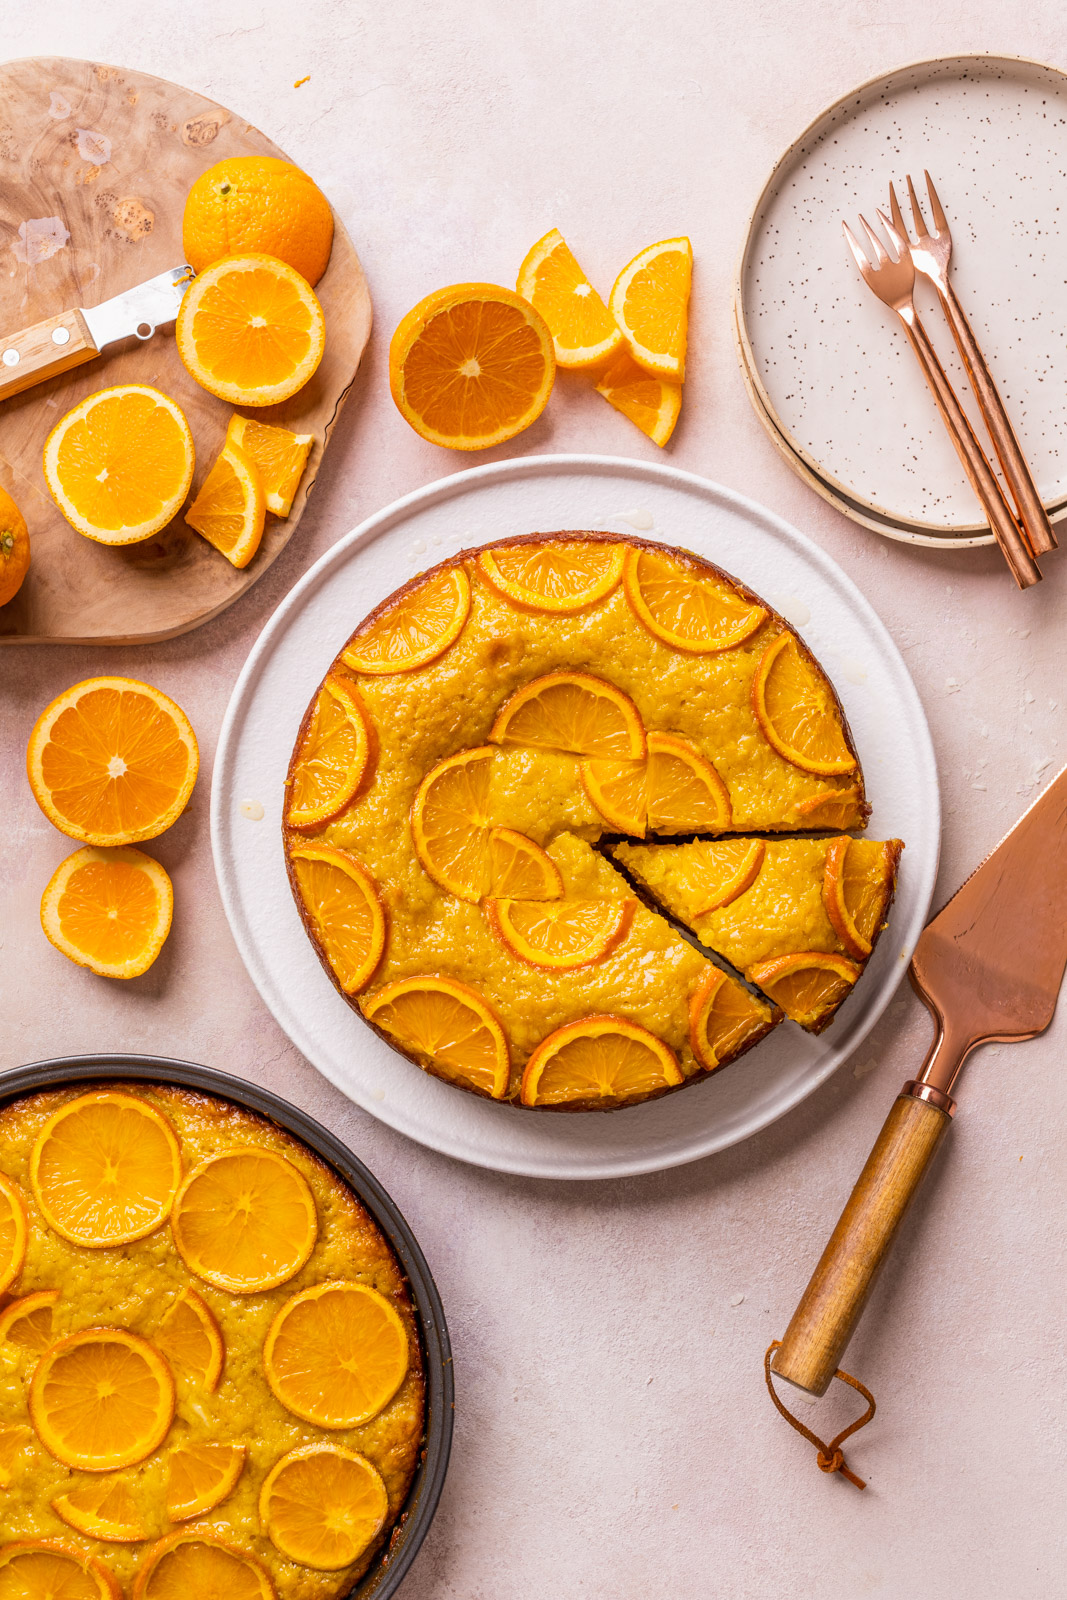 Greek Orange Phyllo Cake (Portokalopita)